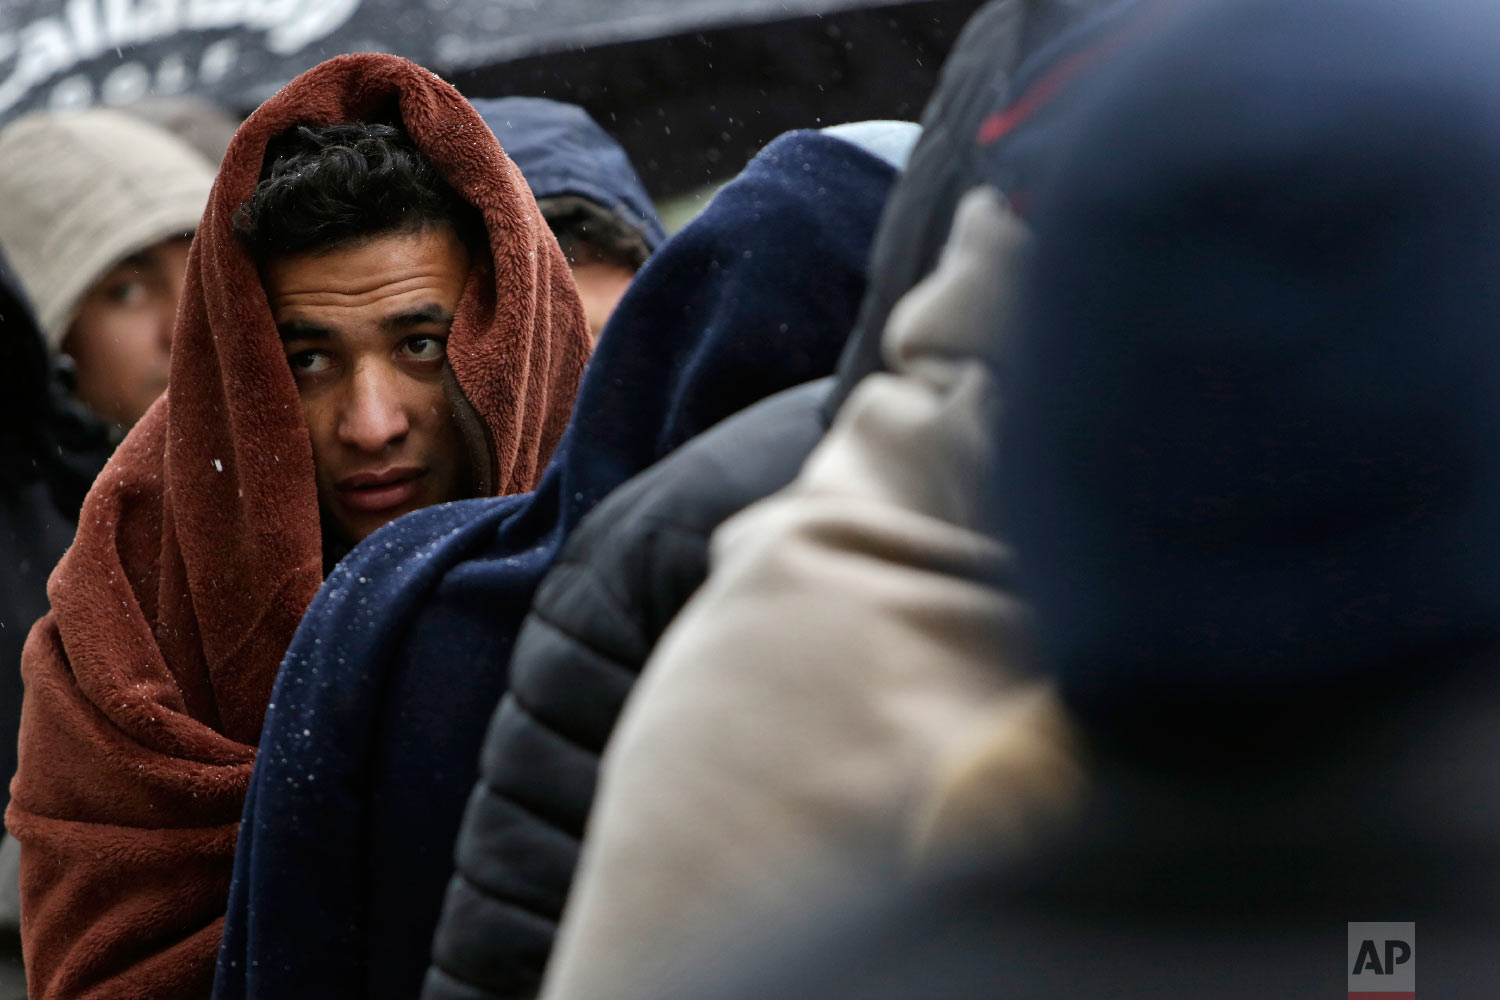 Migrants wrapped in blankets wait for food distribution in Bihac, Bosnia, close to the border to Croatia on Wednesday, Nov. 28, 2018. (AP Photo/Amel Emric)